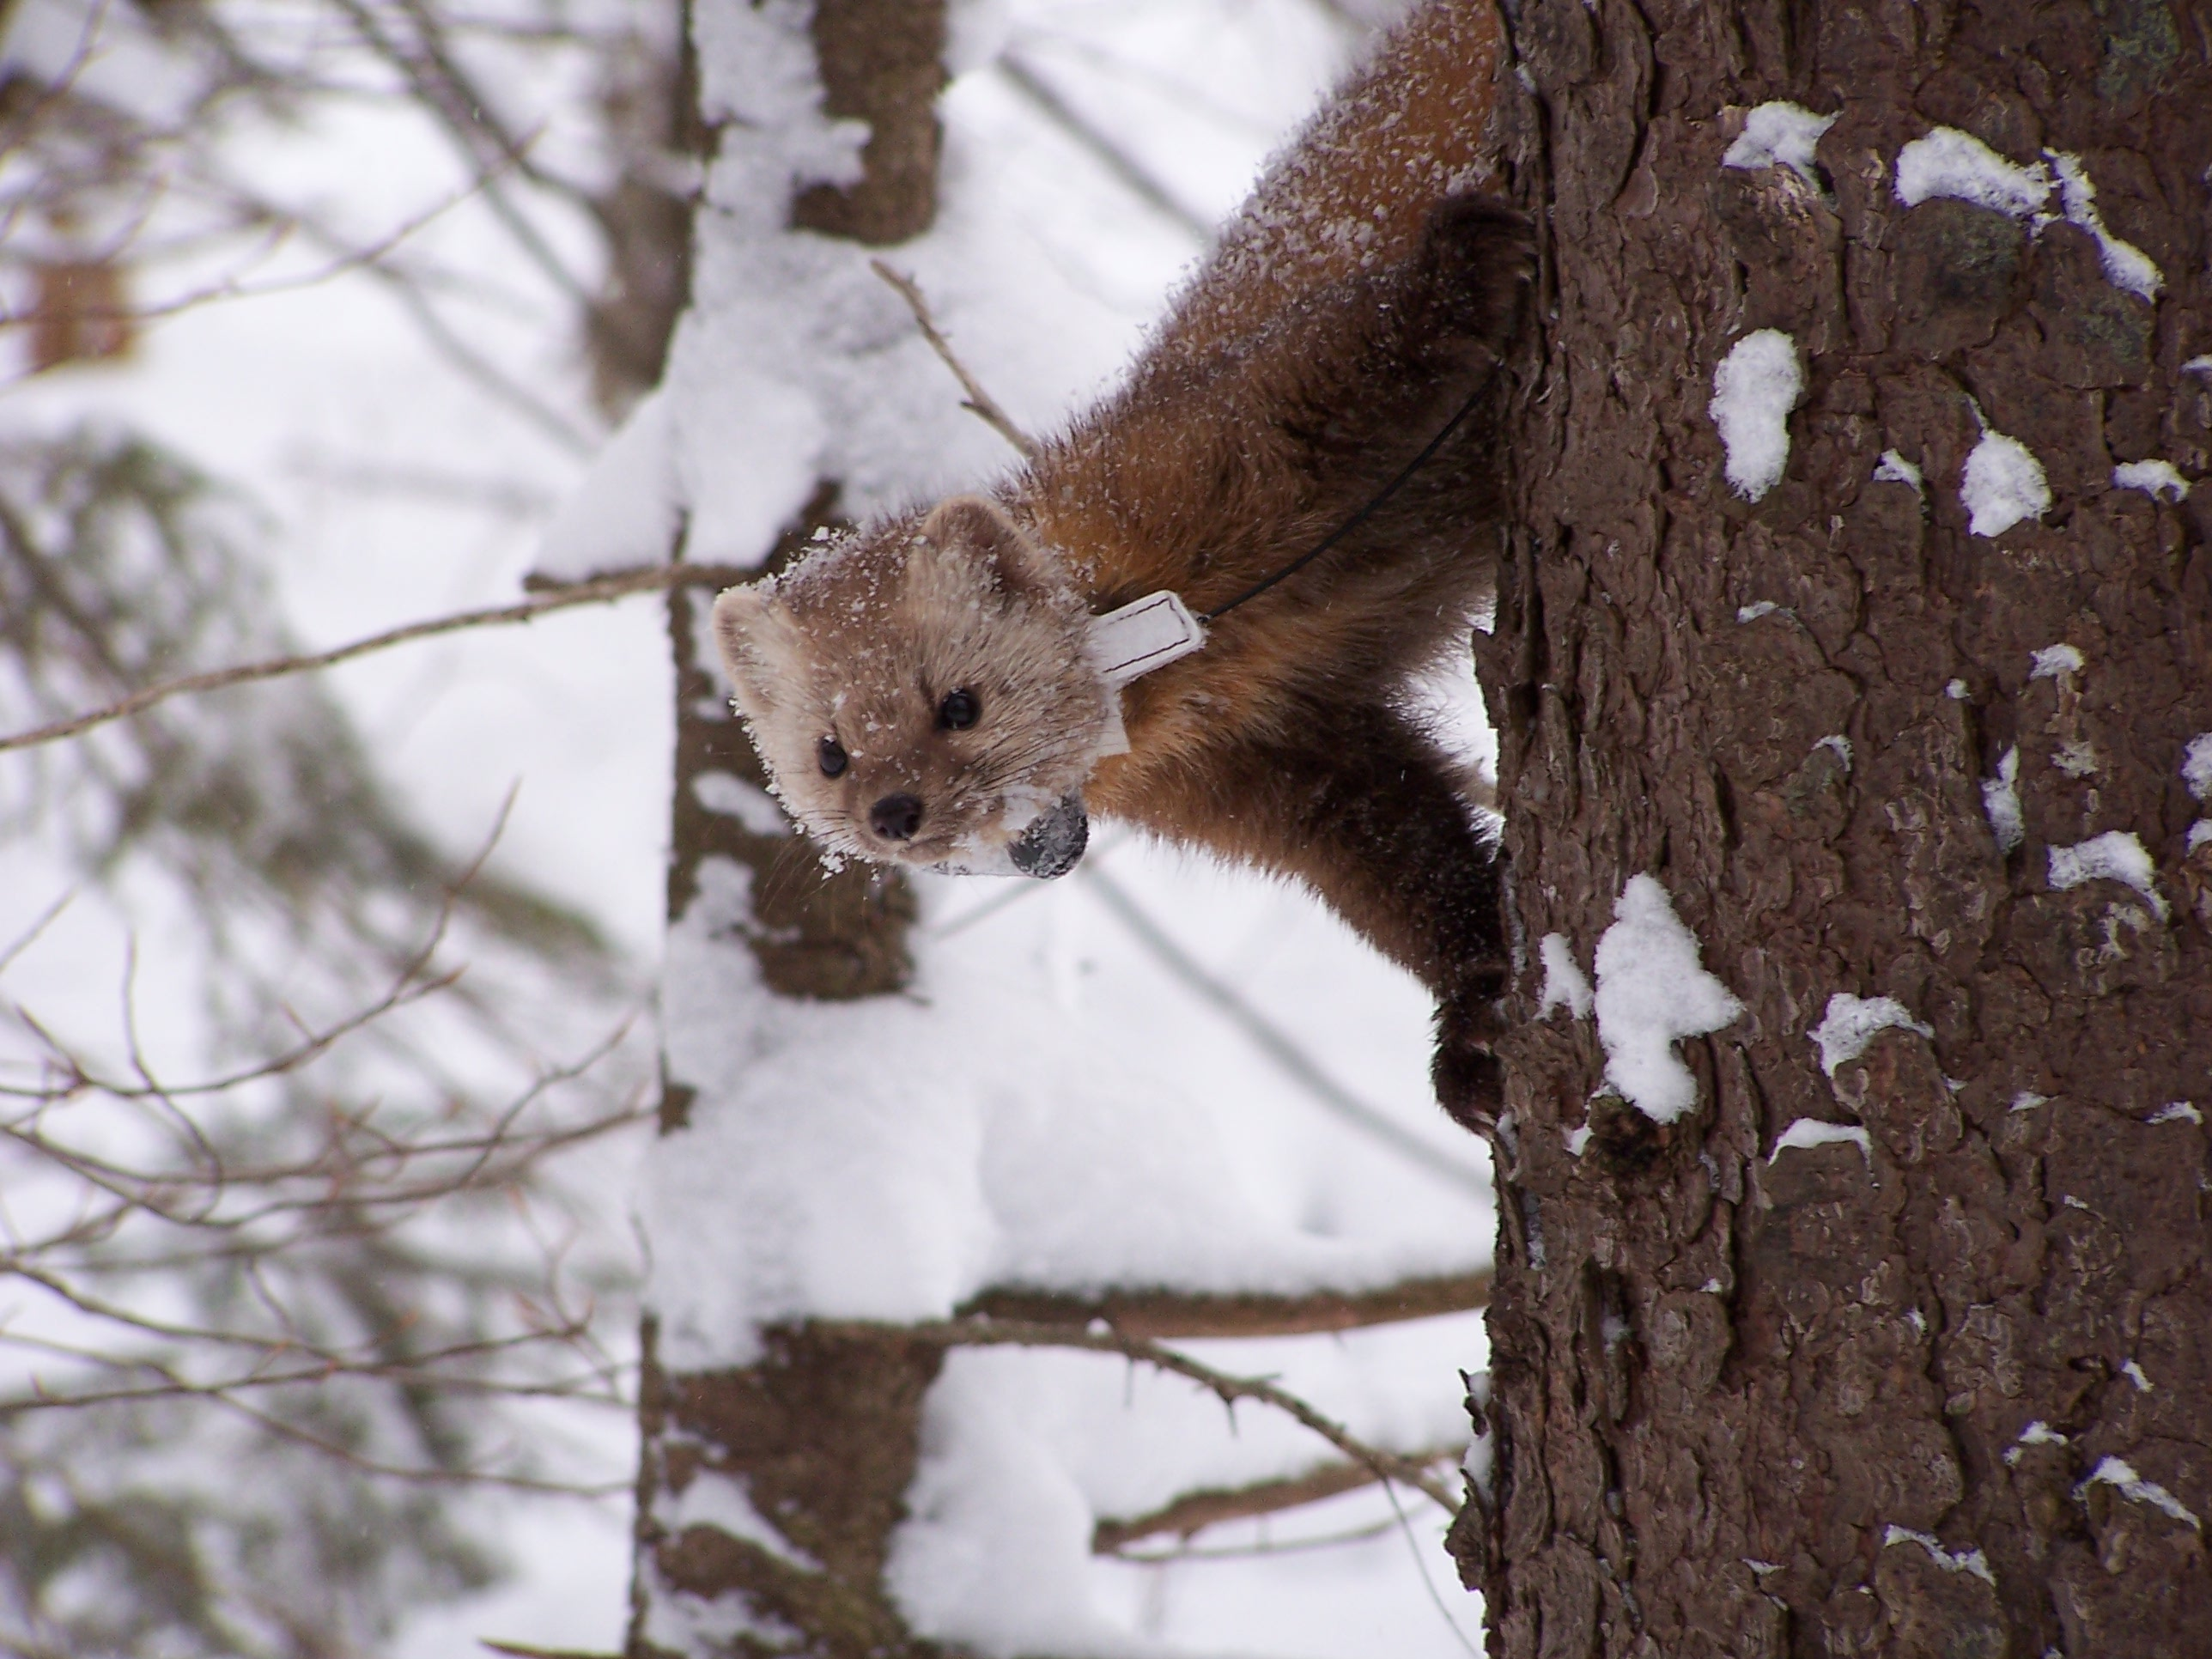 Radio-collared marten in the Adirondacks